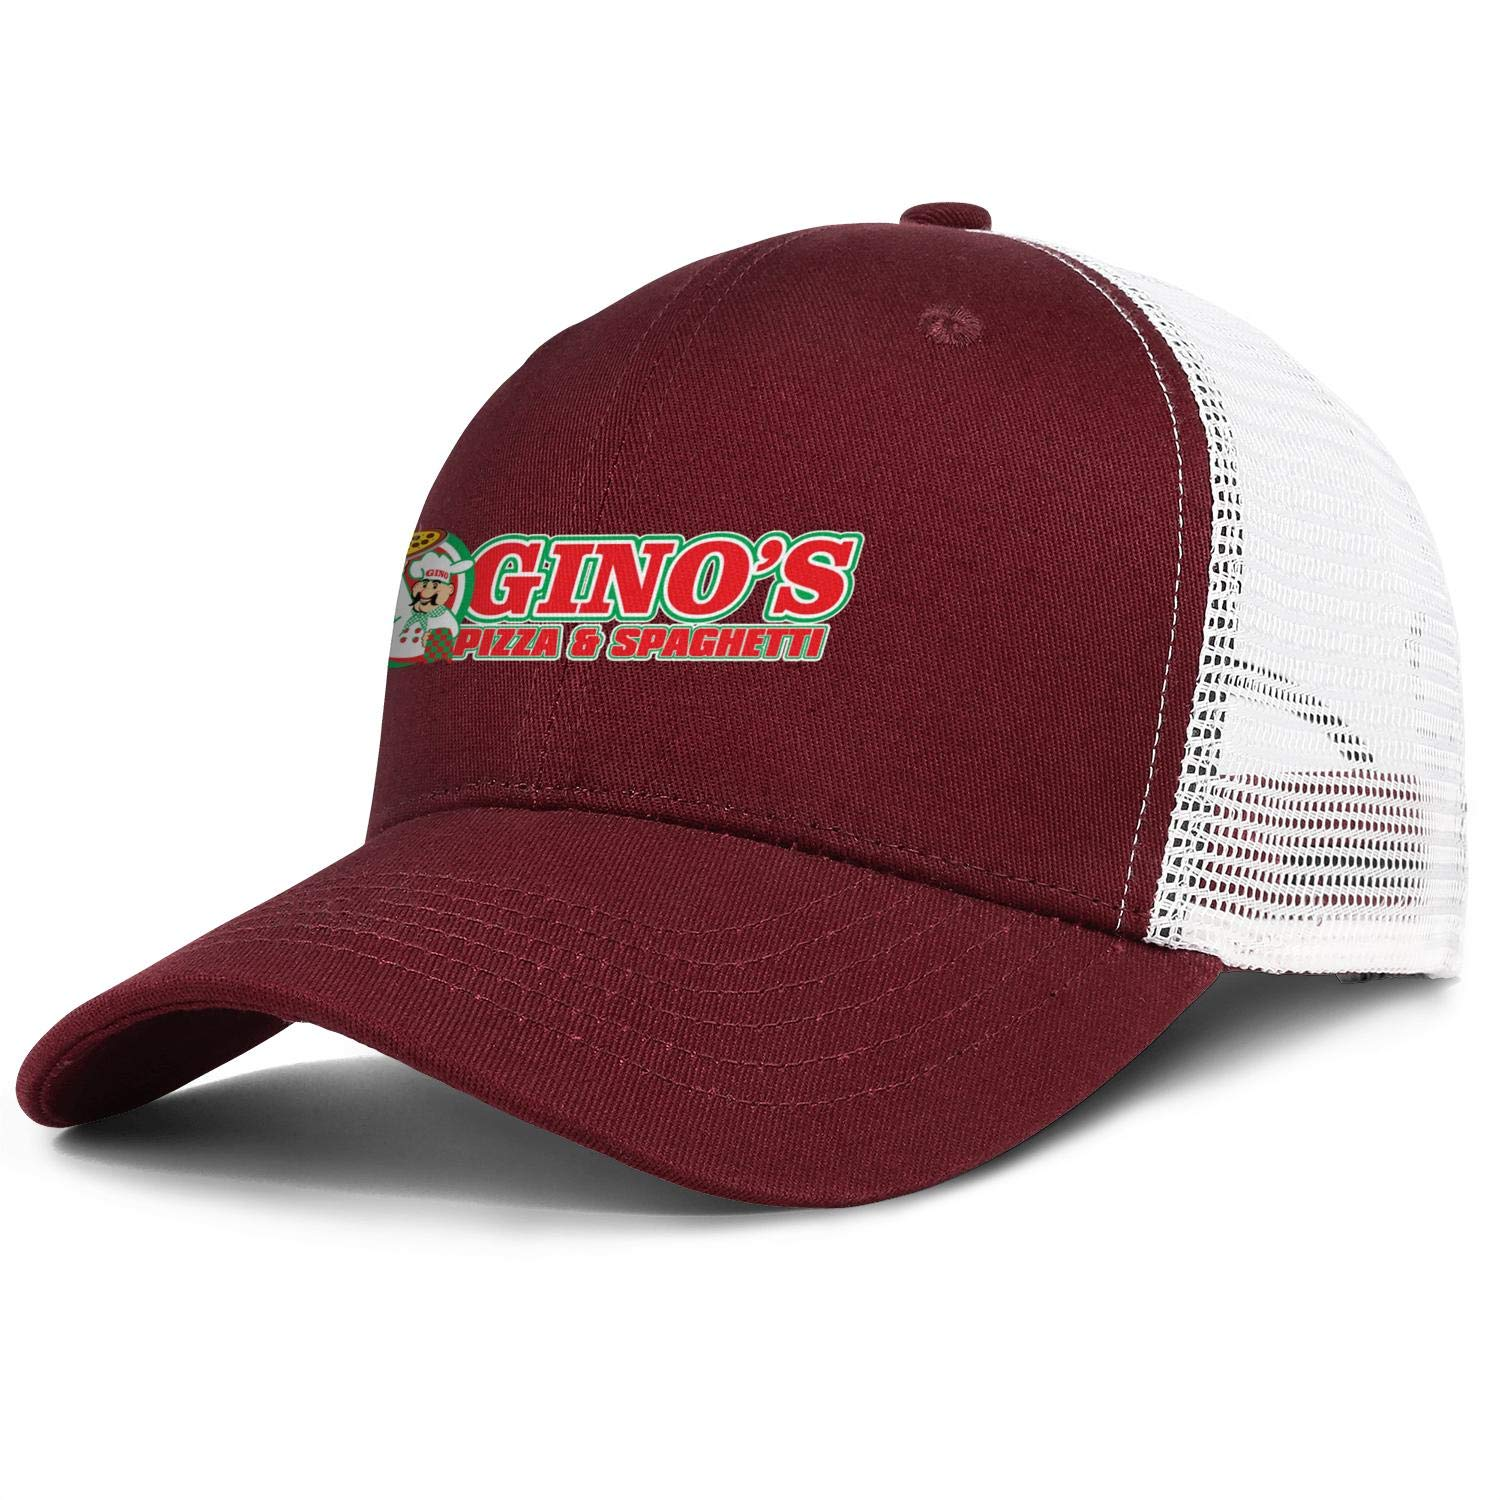 Wudo Unisex Ginos Pizza and Spaghetti Hat Pretty Trucker Hat Baseball Cap Adjustable Cowboy Hat